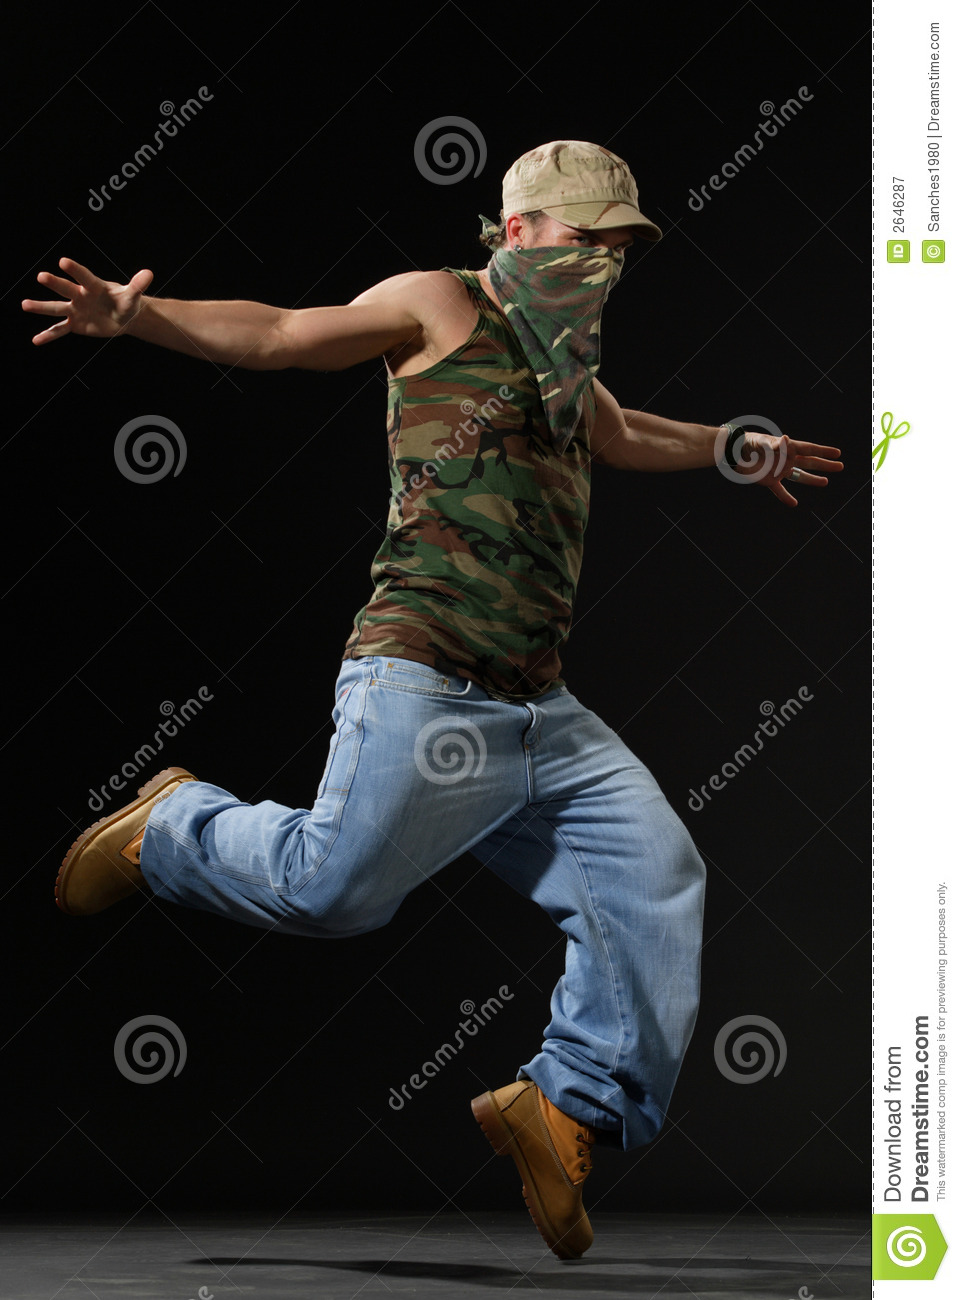 The Krump Dancer Royalty Free Stock Photography - Image: 2646287